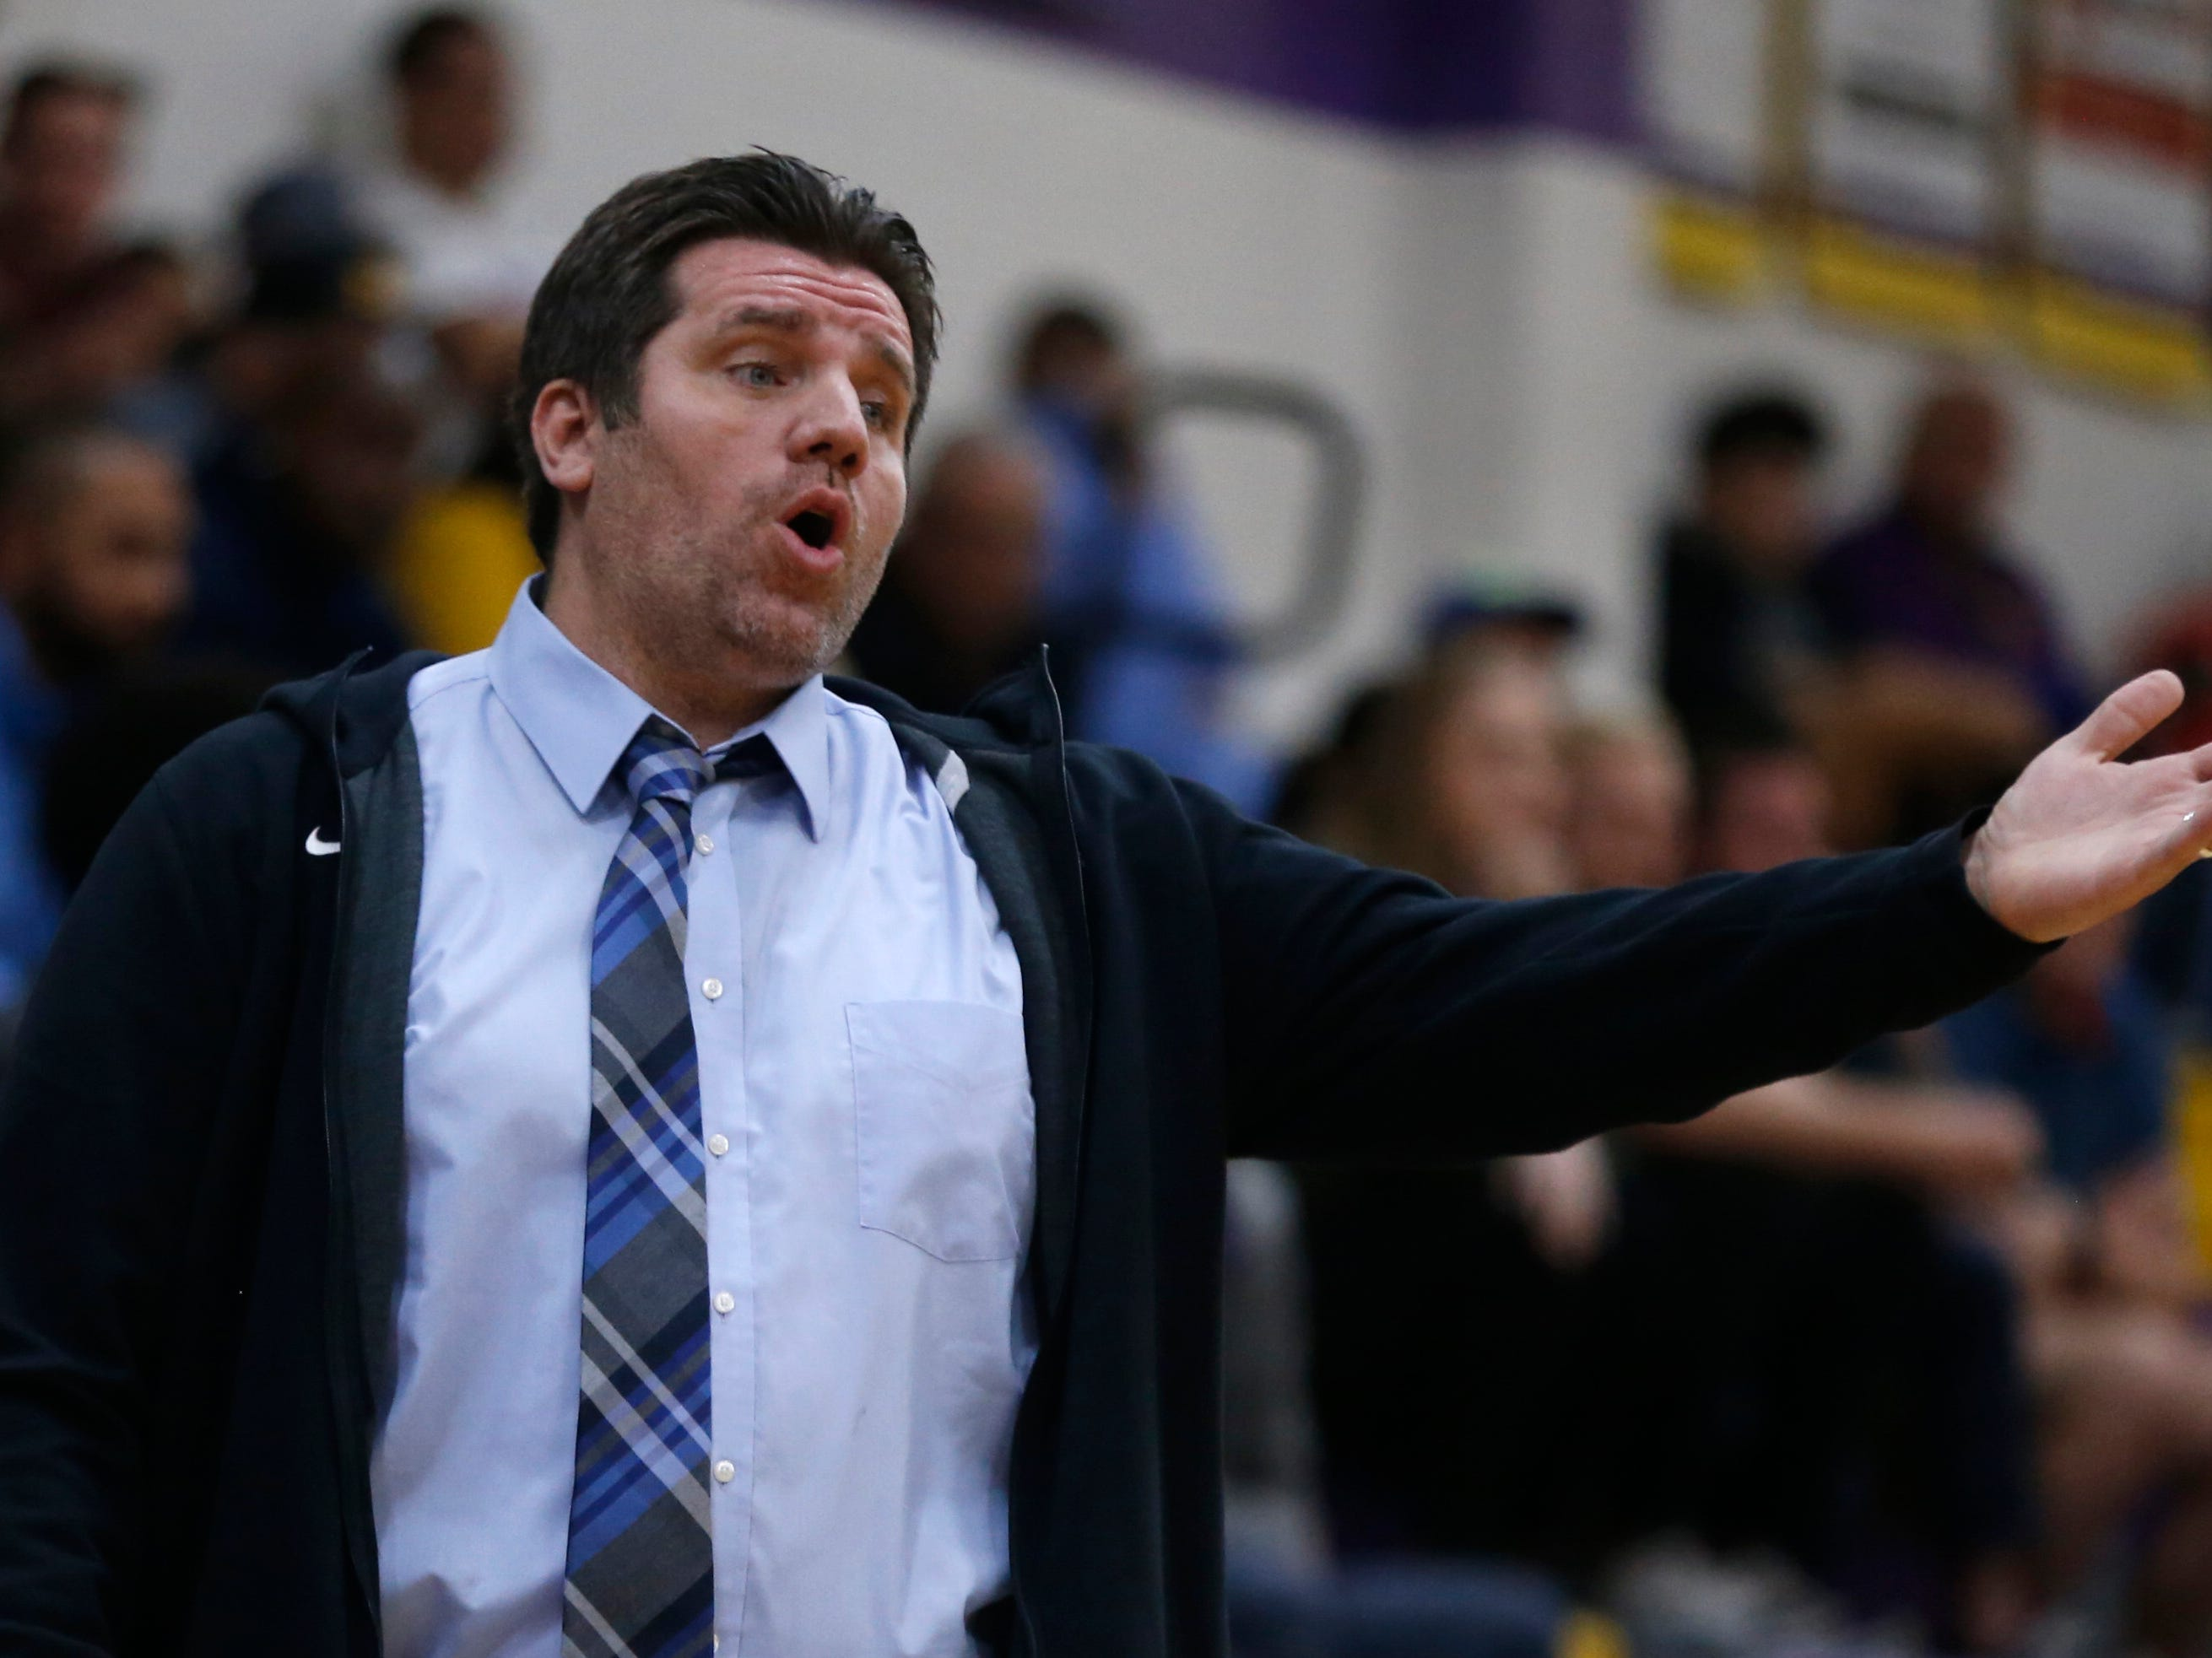 Valley Vista's head coach Ben Isai yells to his players during the first half of the boys basketball tournament play-in game against Mesa at Mesa High School in Mesa, Ariz. on February 8, 2019.